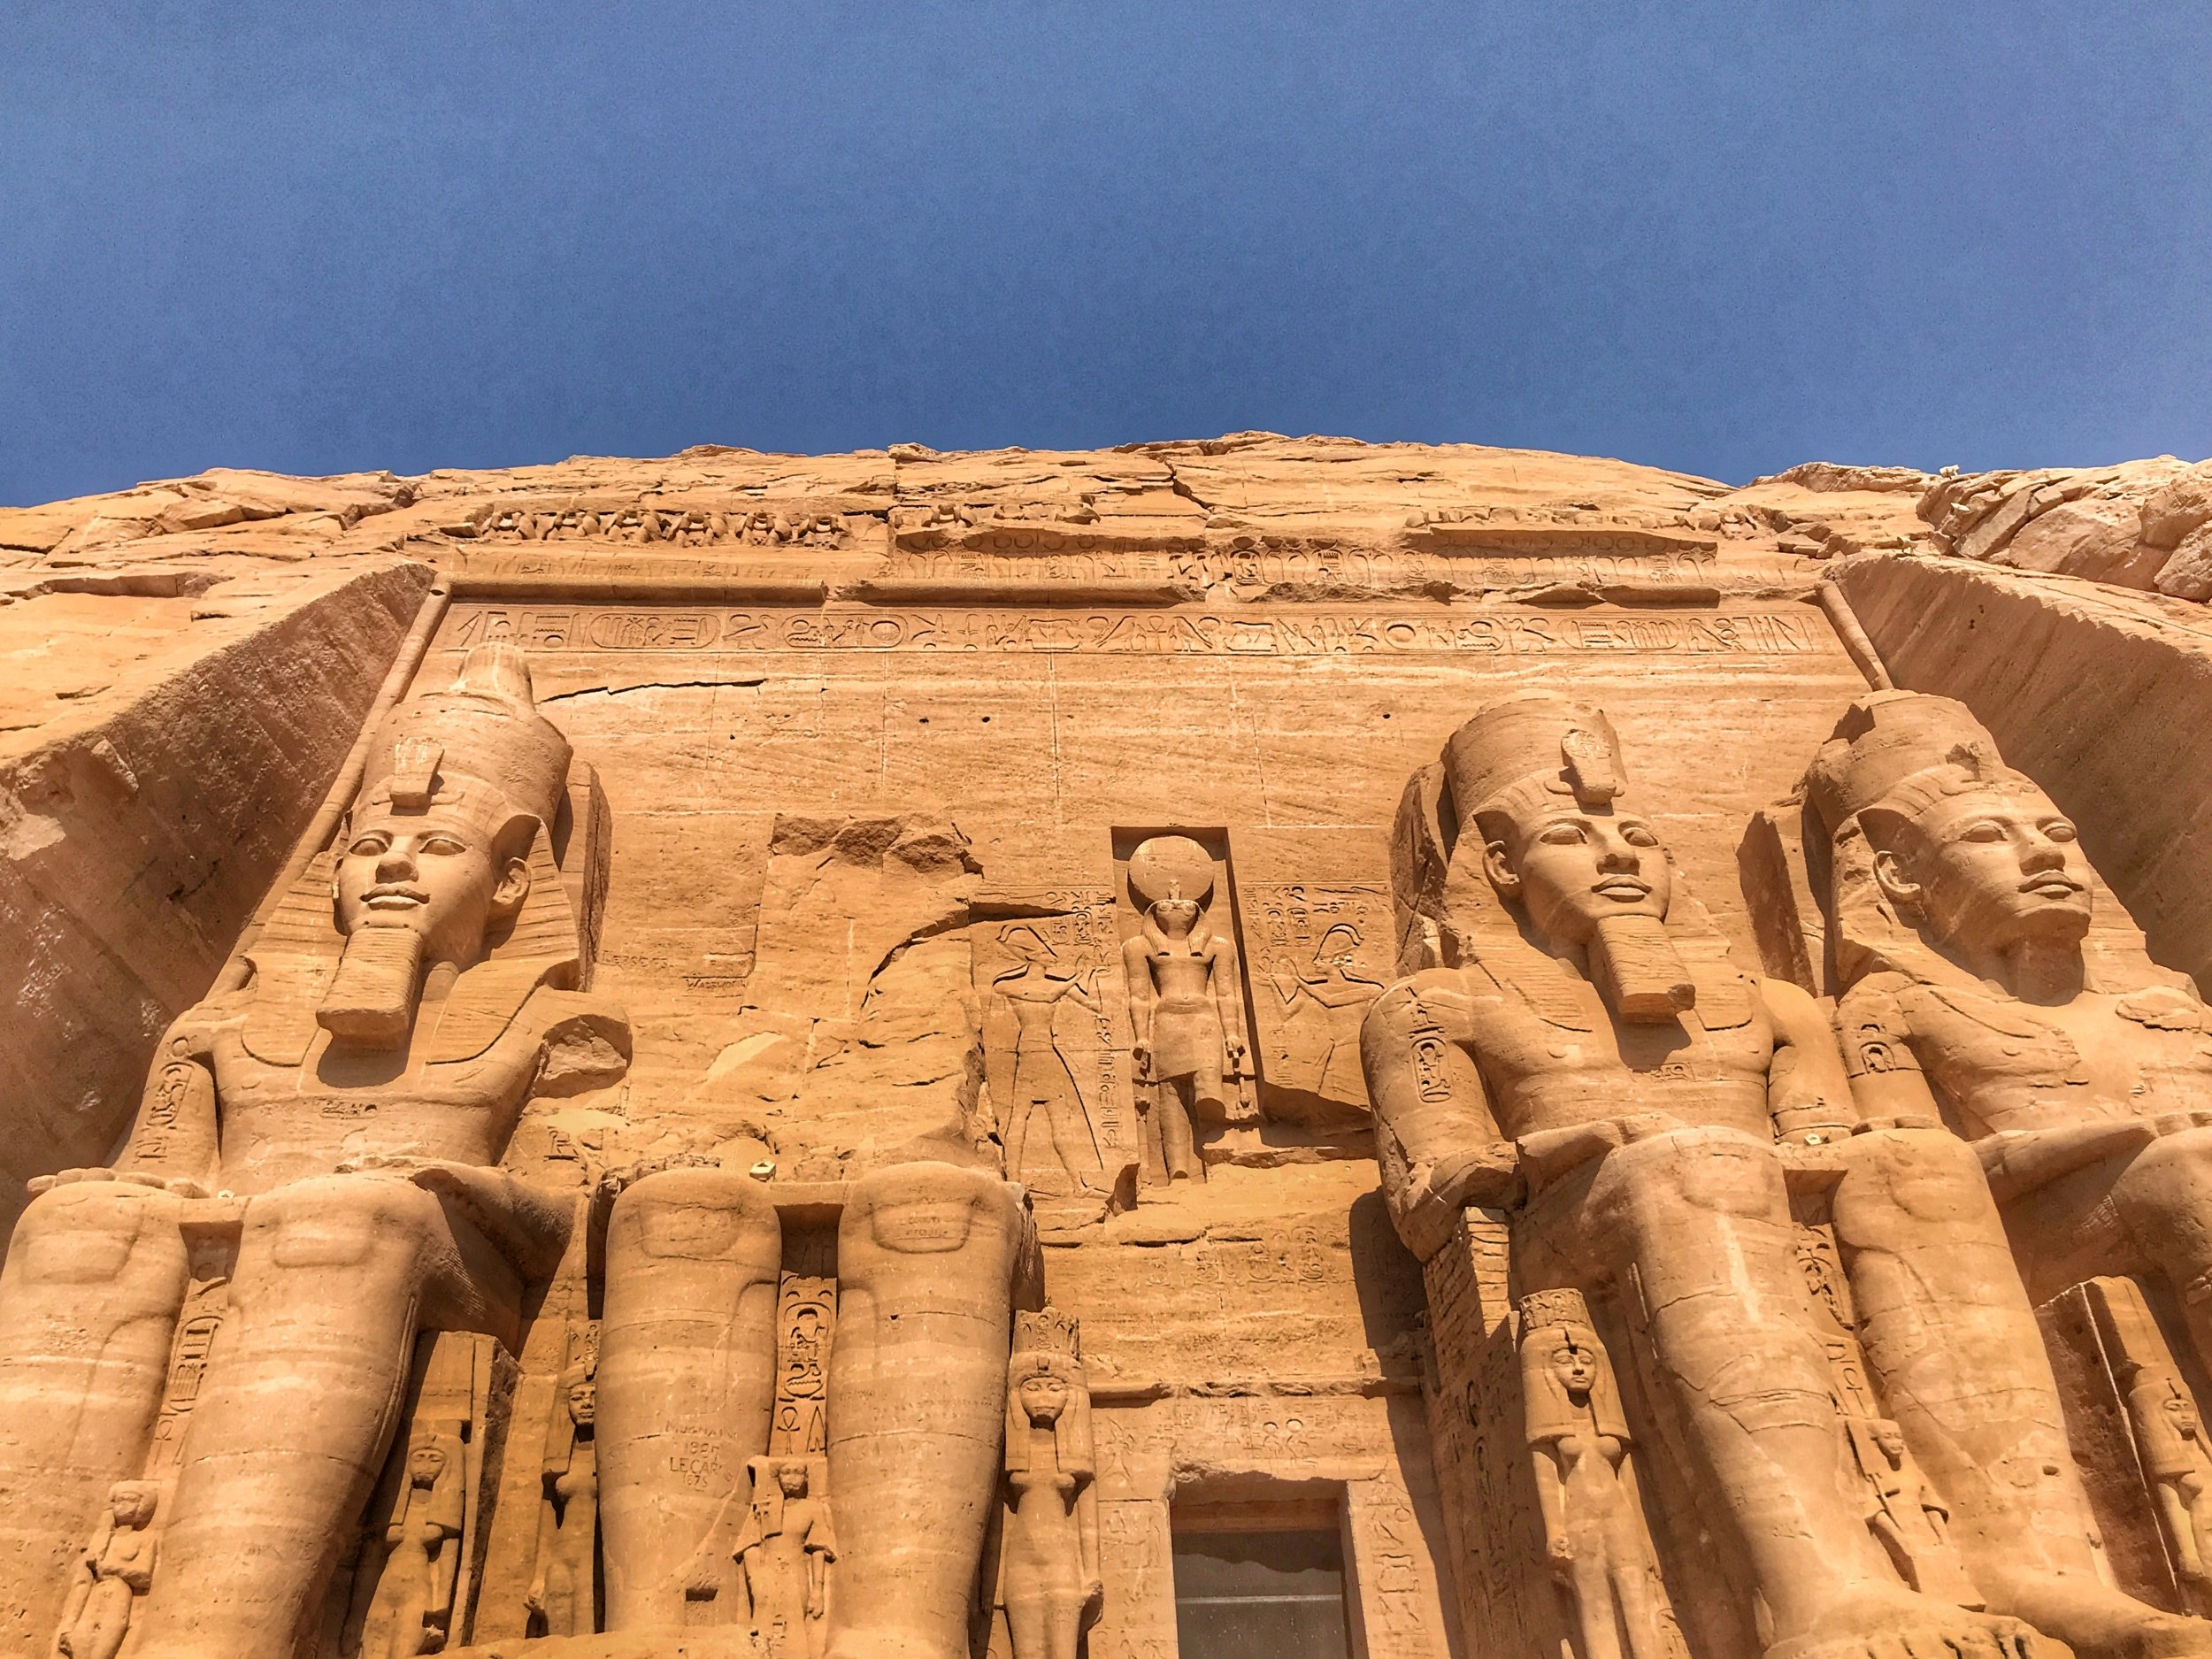 It's a family affair at Abu Simbel — those smaller statues at the bottom are Ramesses' wife, mother and children